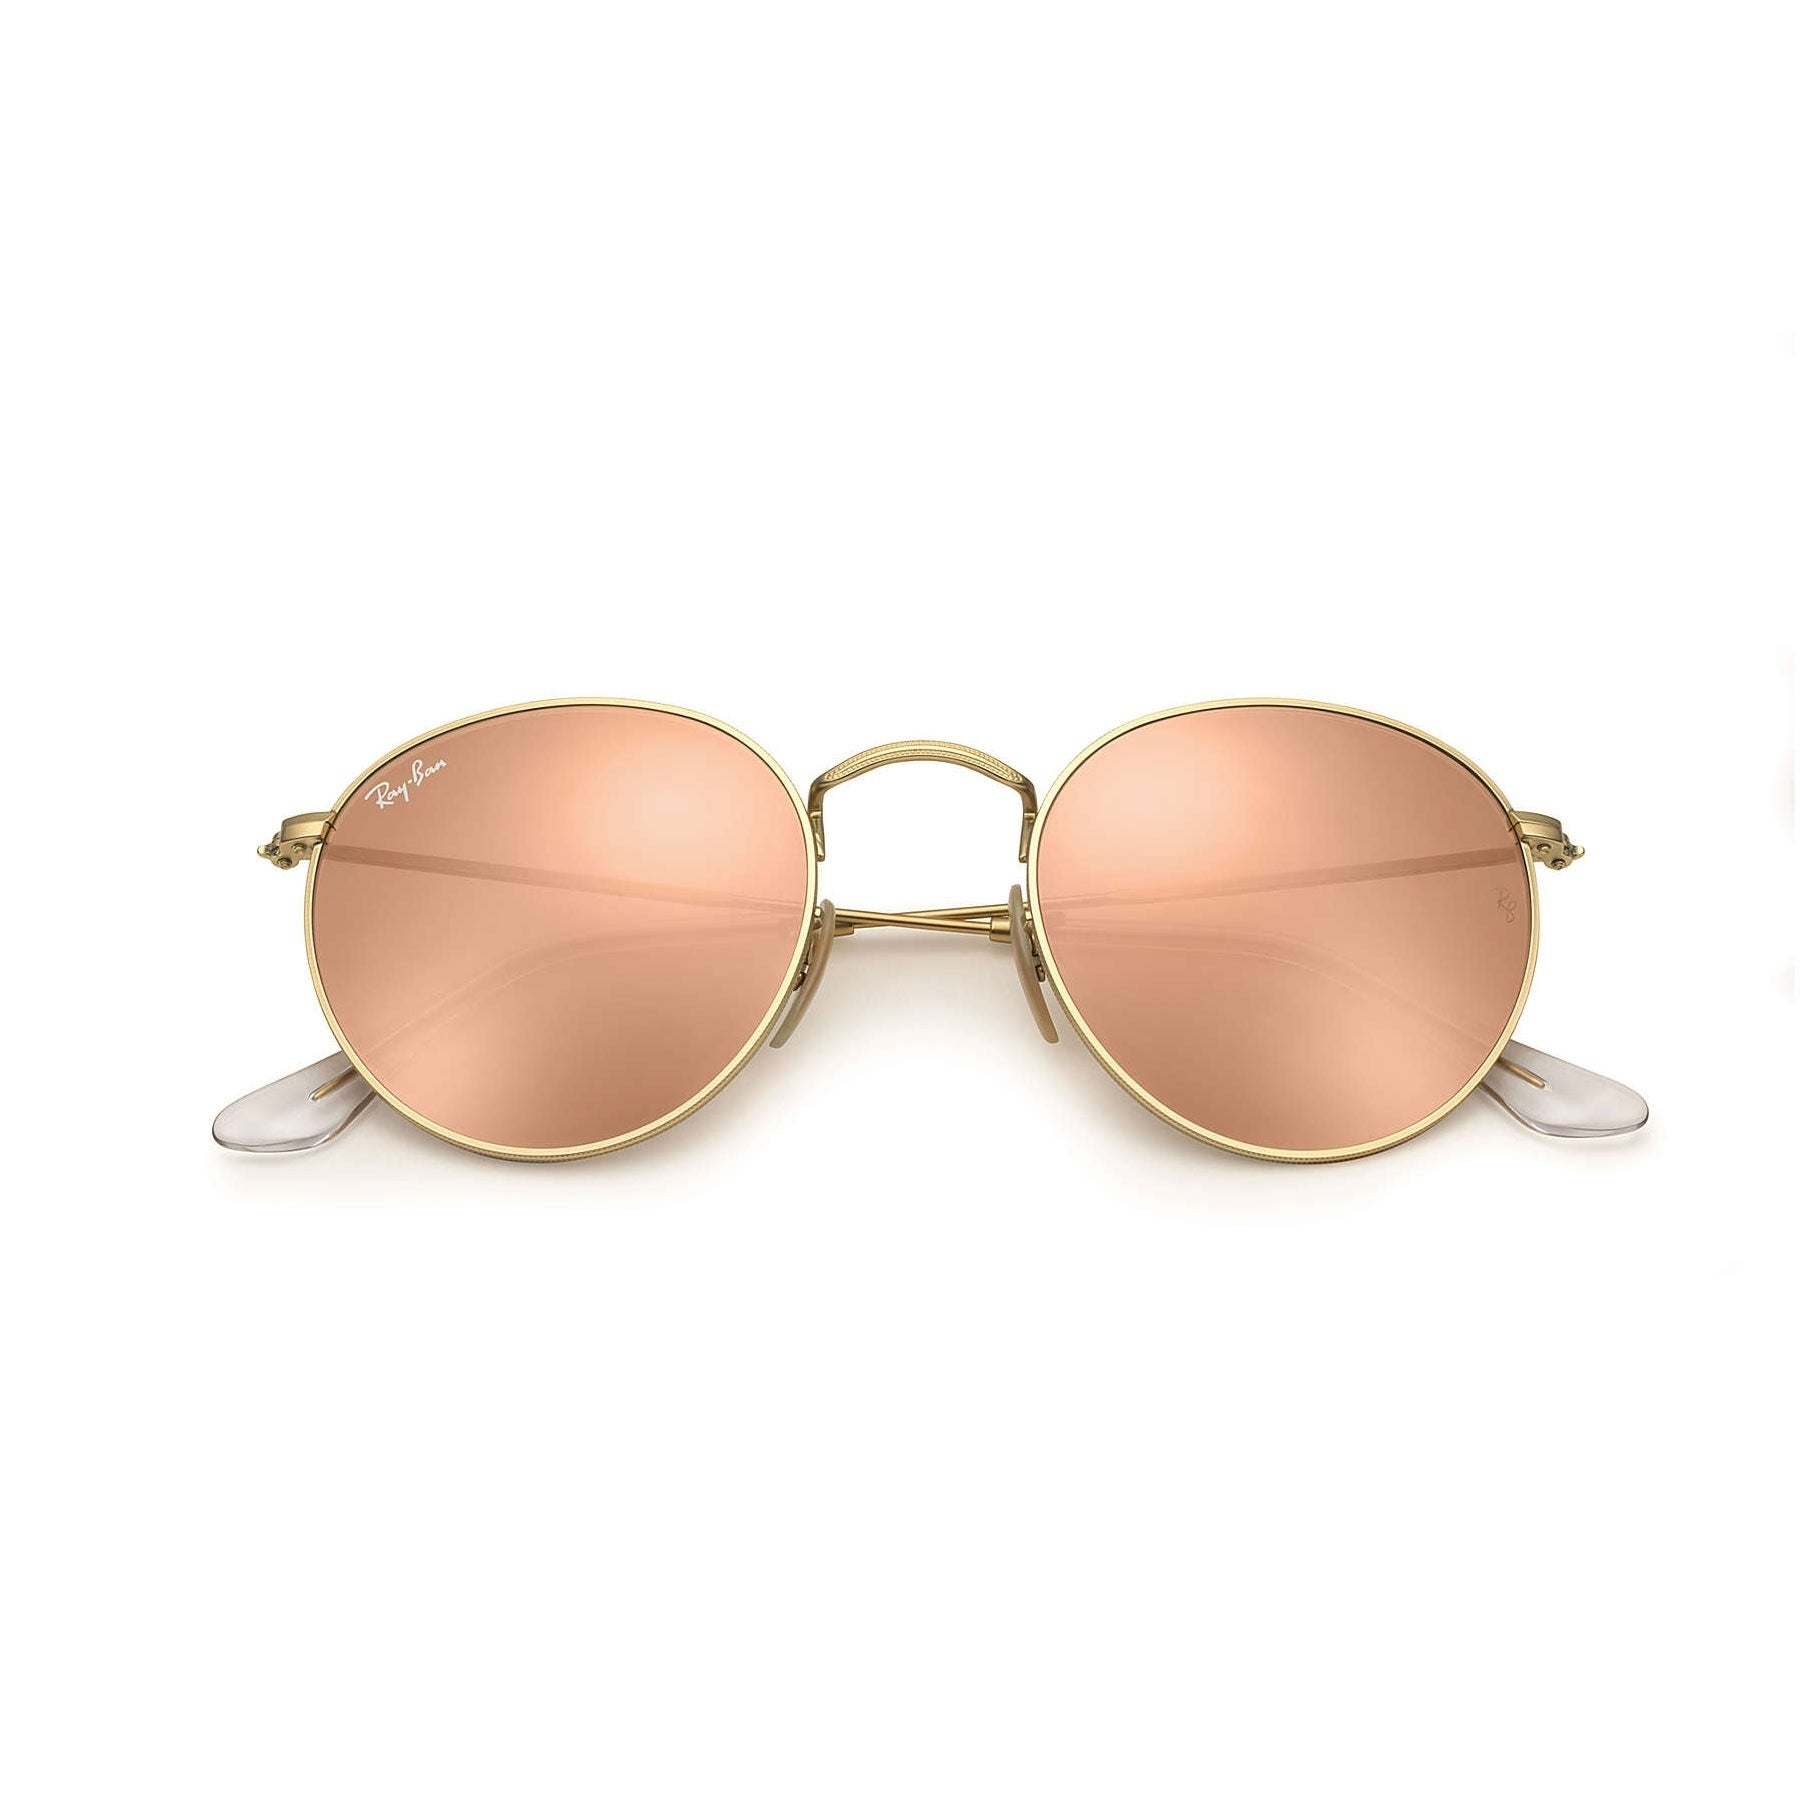 dbefb393d18ad Shop Ray-Ban RB3447 Round Flash Lenses Sunglasses Gold  Copper Flash 50mm -  Gold - Free Shipping Today - Overstock - 10482651